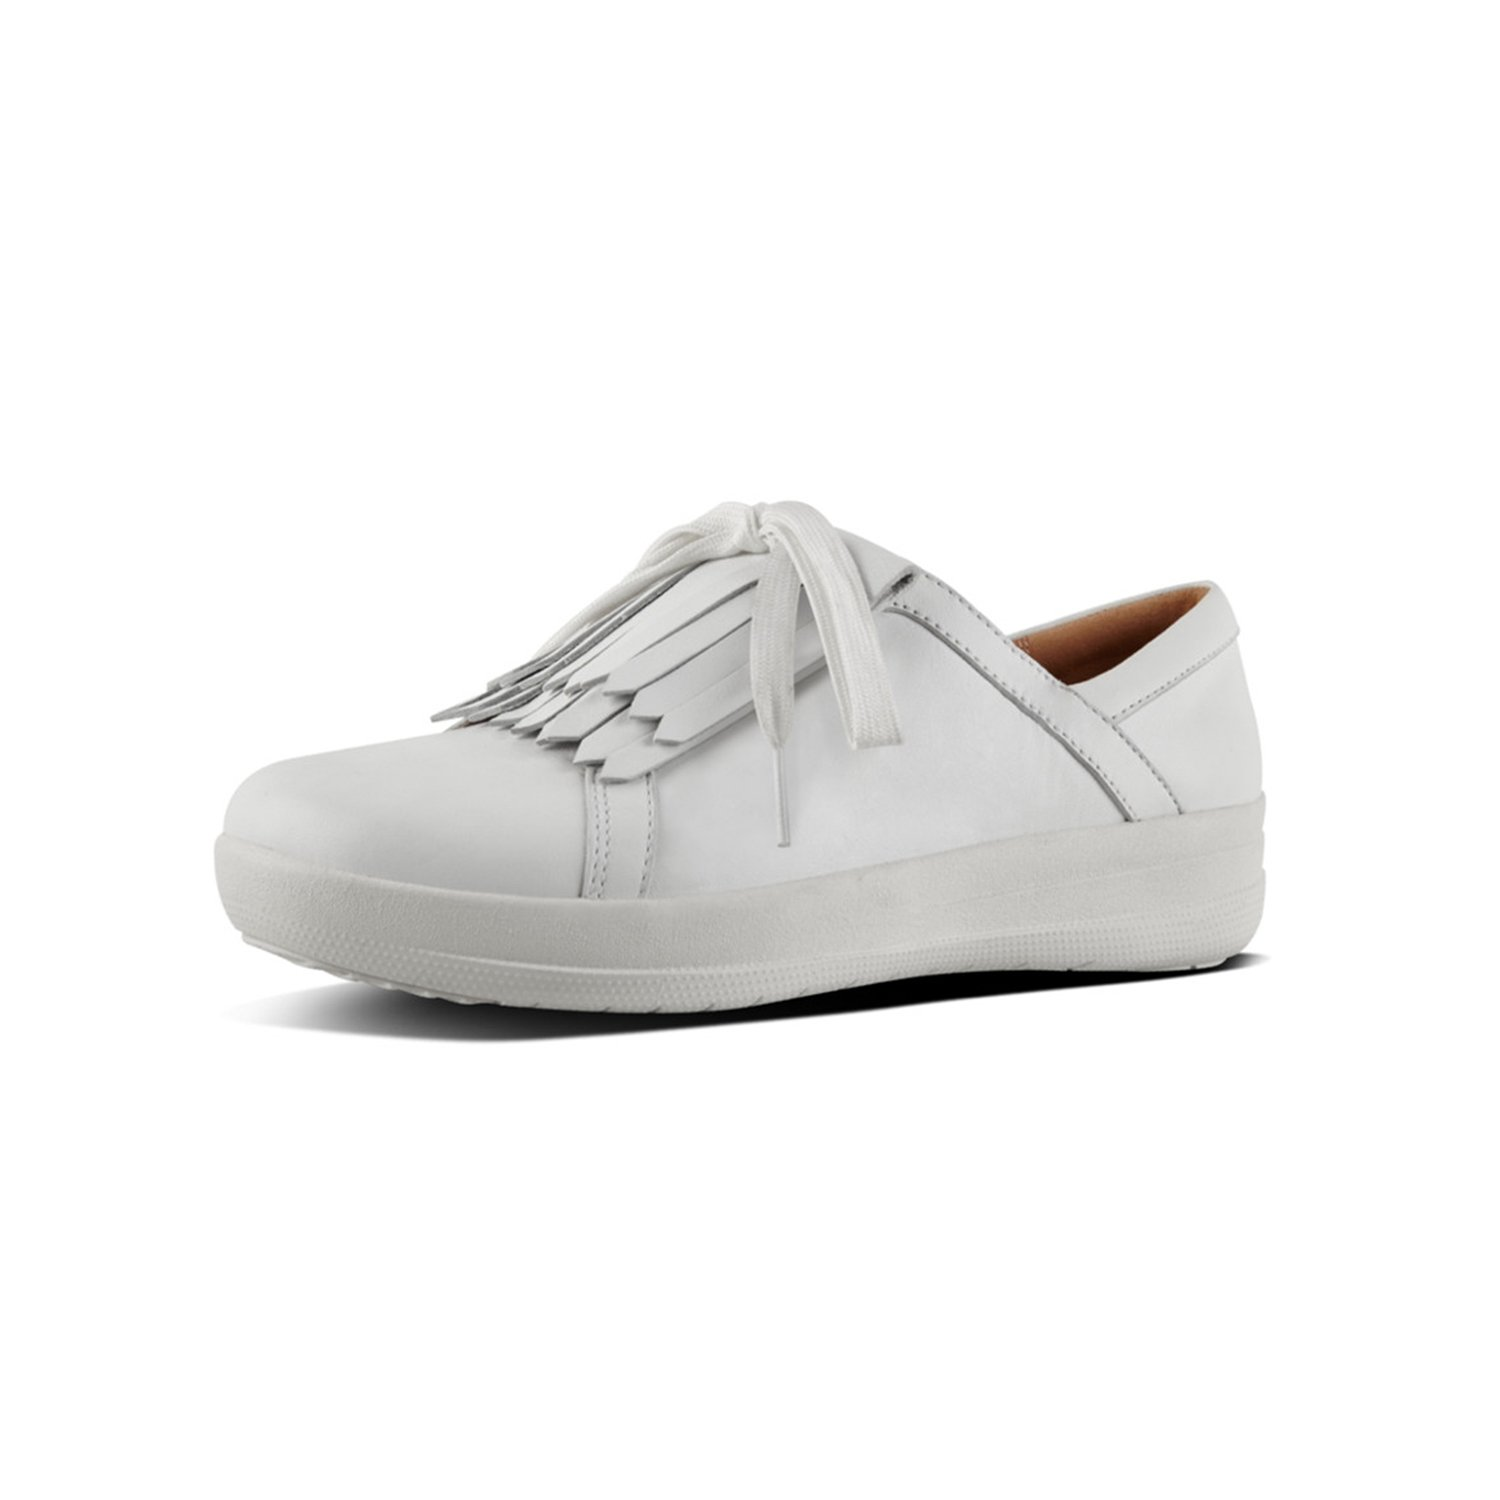 FitFlop F-Sporty Lace TM II 194) Lace Up Fringe, Derbys Blanc Femme Blanc (Urban White 194) 387b13b - therethere.space